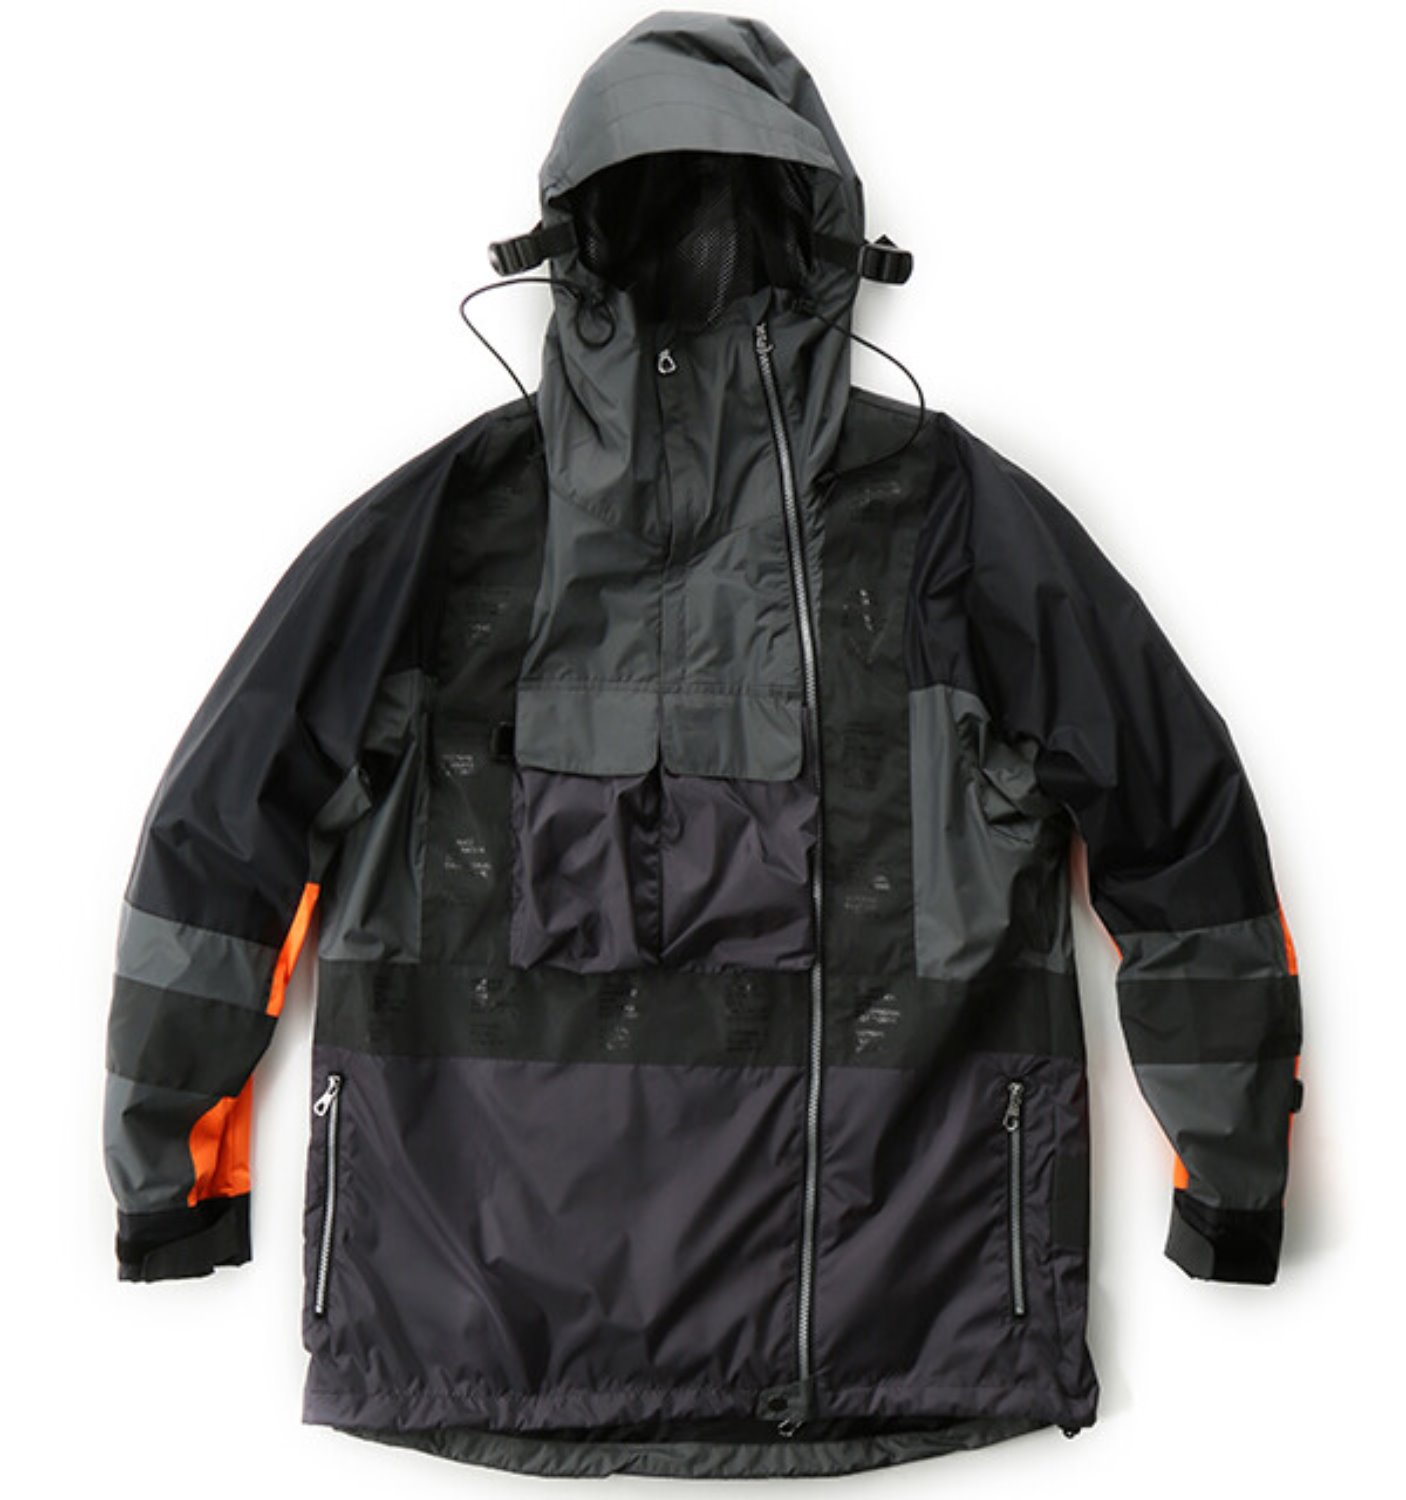 3M TAPED WATER PROOF JACKET CHARCOAL